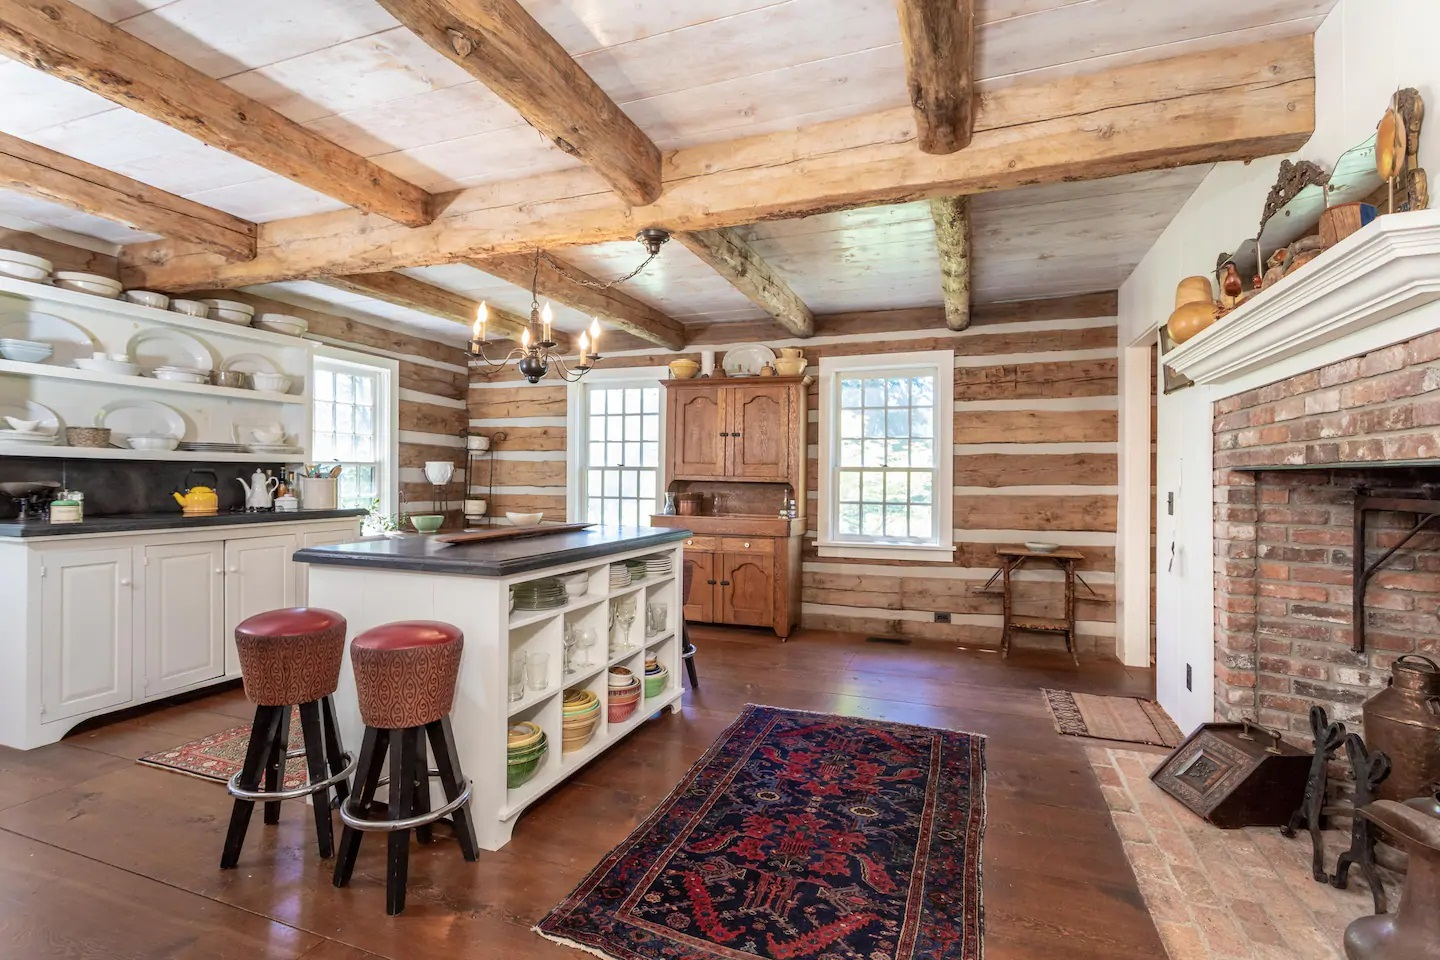 Photo of a log home Airbnb located in Montana.